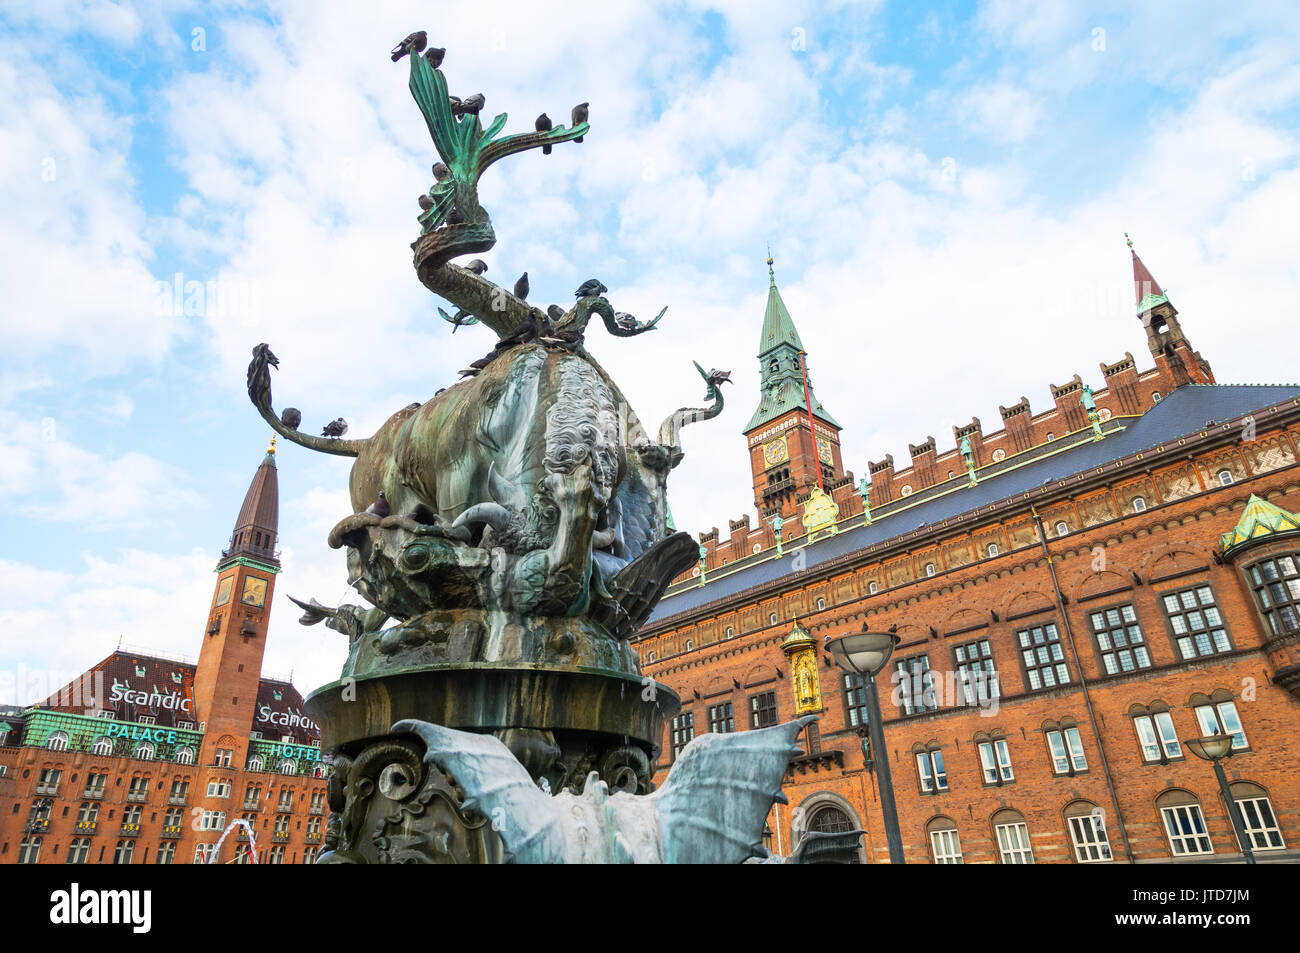 Copenhagen, Denmark, The City Hall Palace and Clock Tower with the Bull and Dragon fountain in the foreground - Stock Image